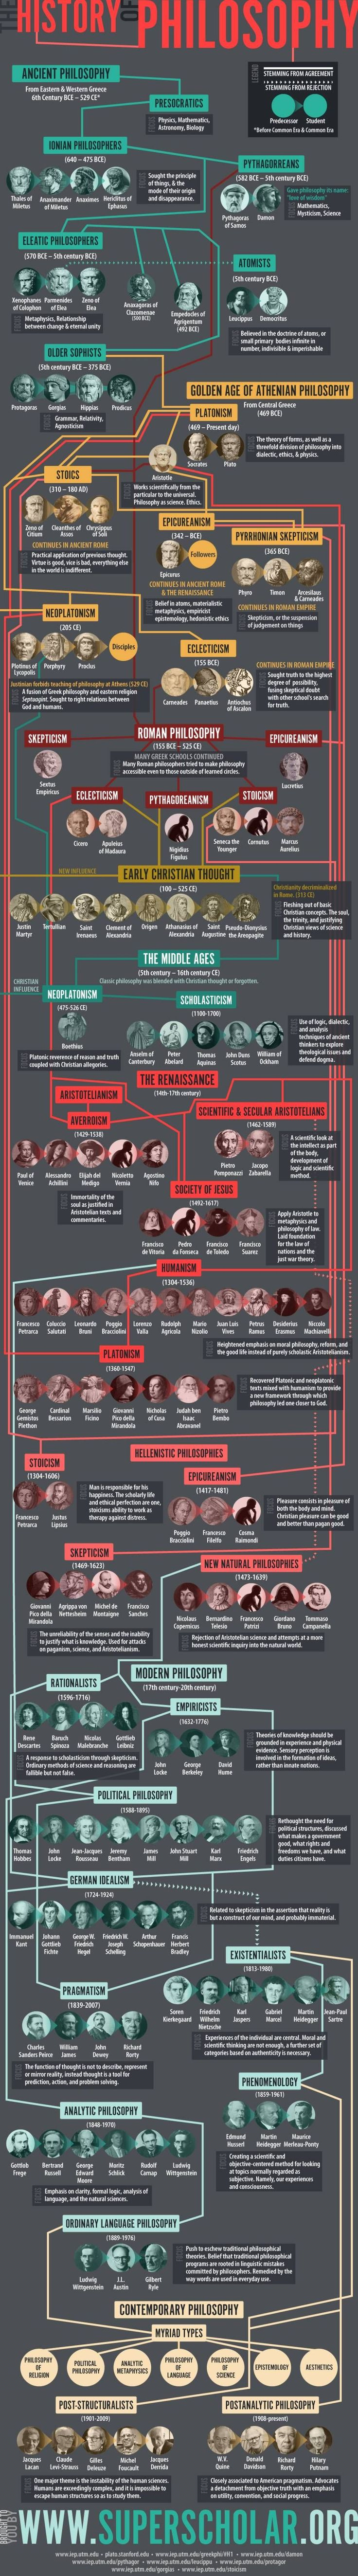 History of Philosophy #infographic